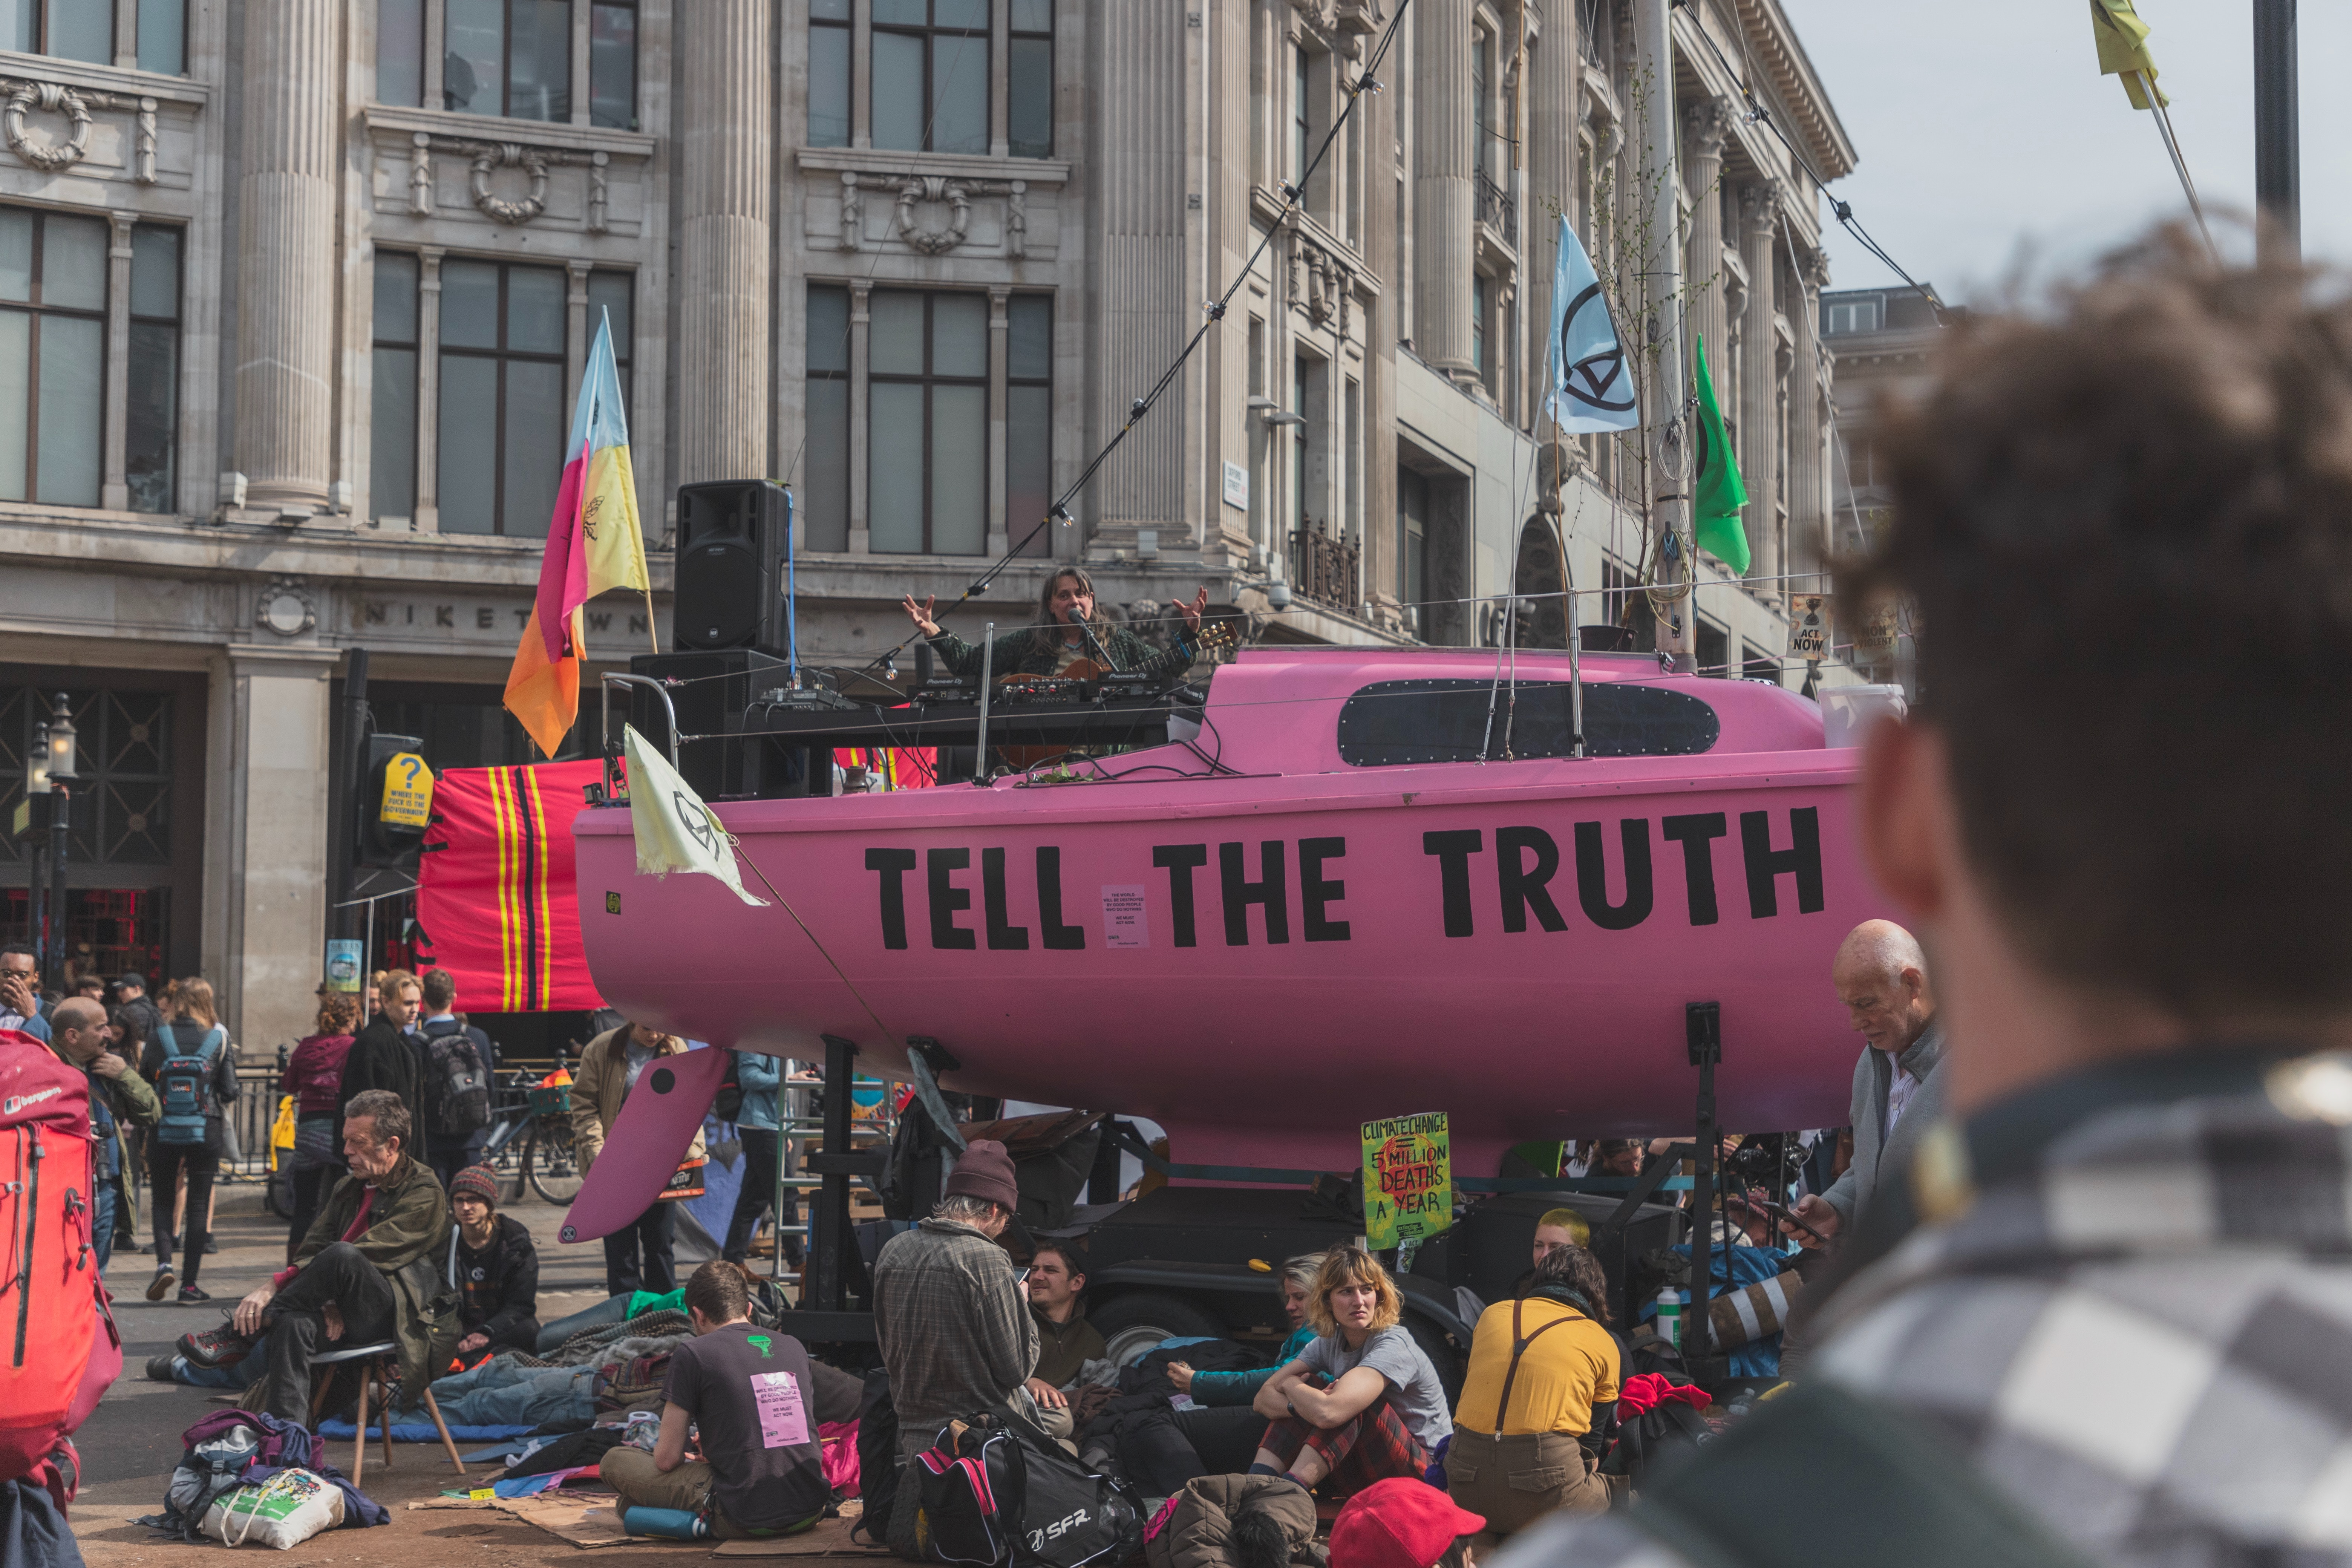 tell the truth protest